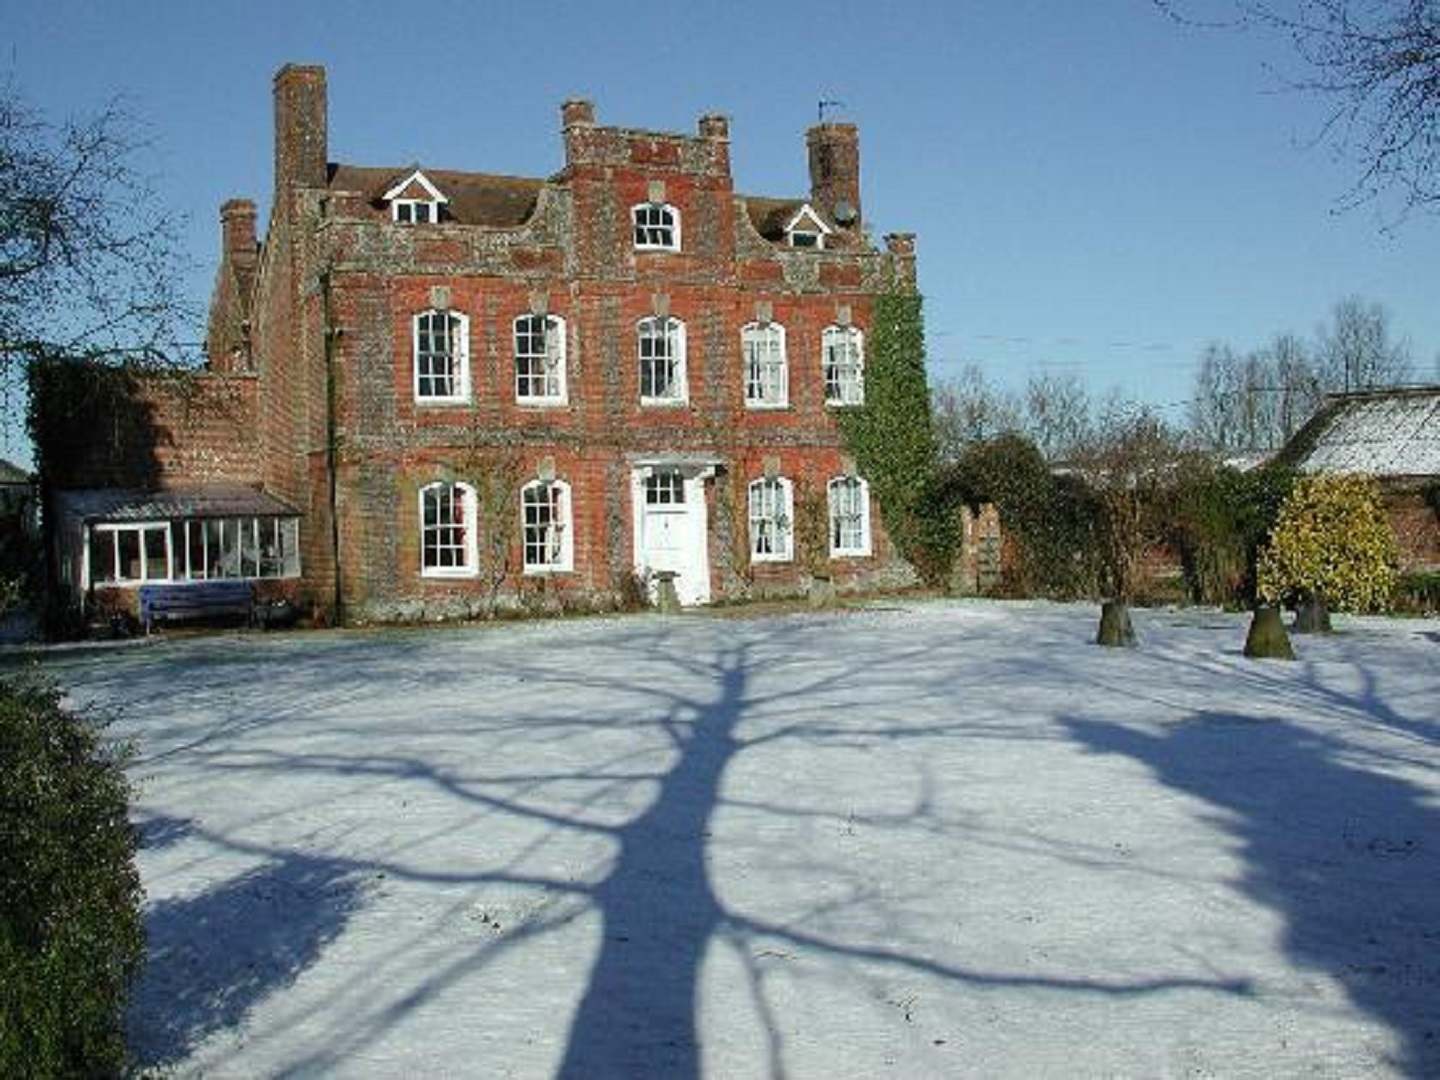 A house covered in snow in front of a brick building at Manor Farm B & B.